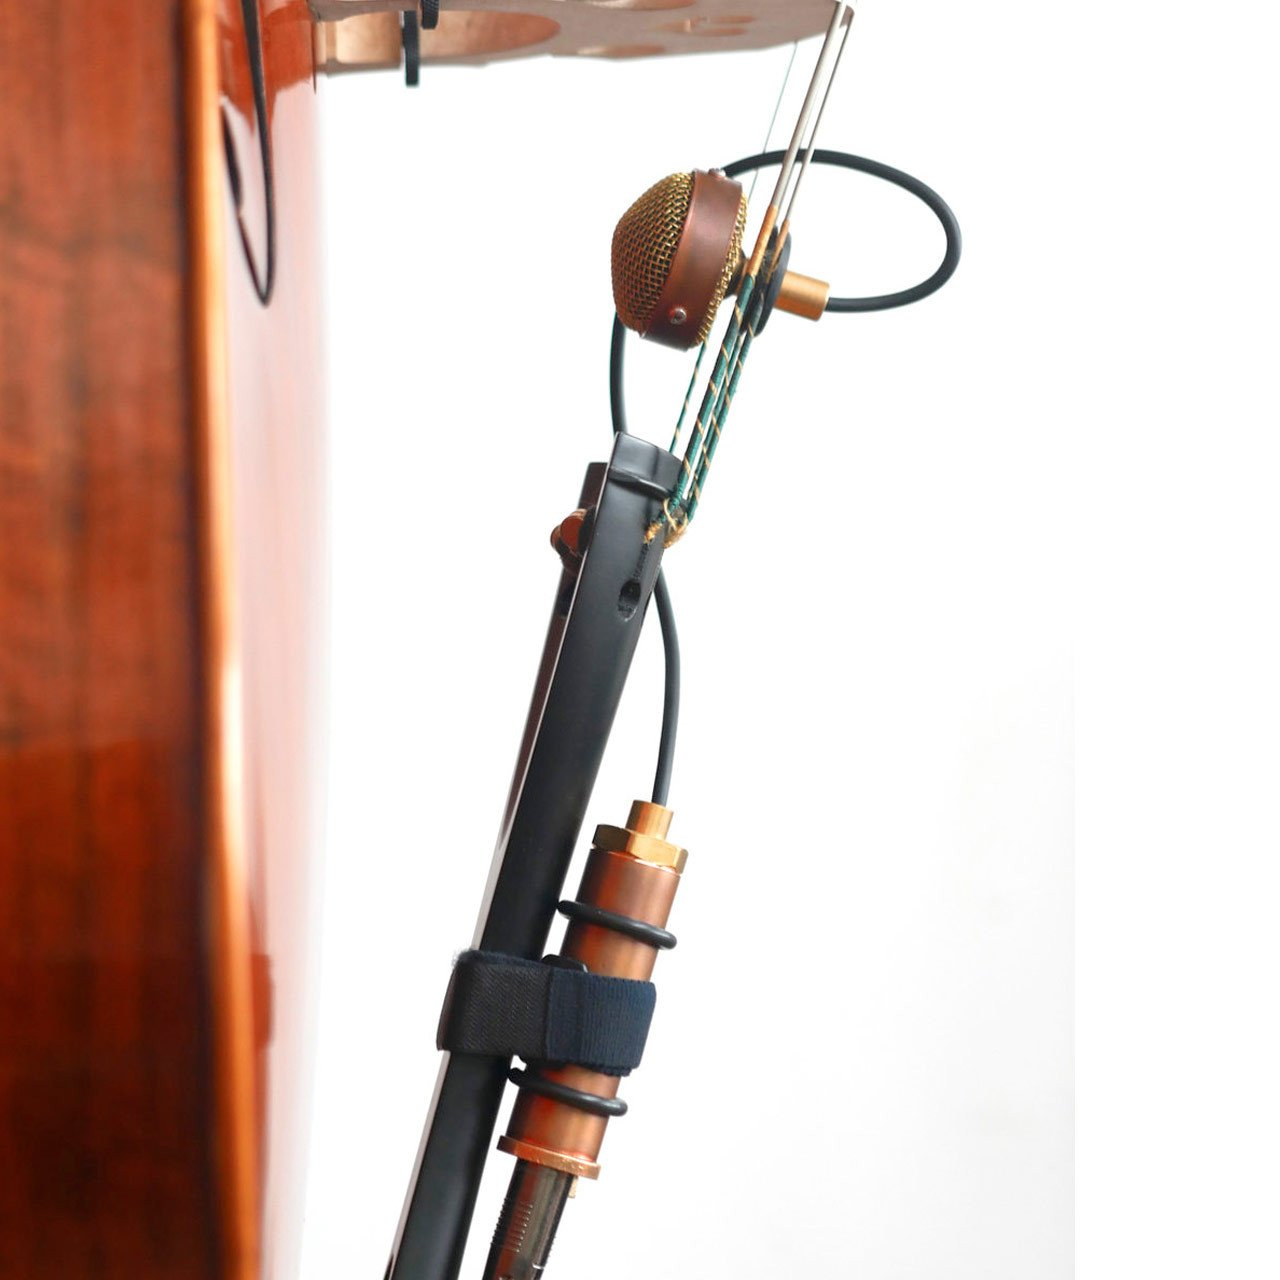 Condenser Microphones - Ear Trumpet Labs Nadine - Condenser Microphone For Upright Bass